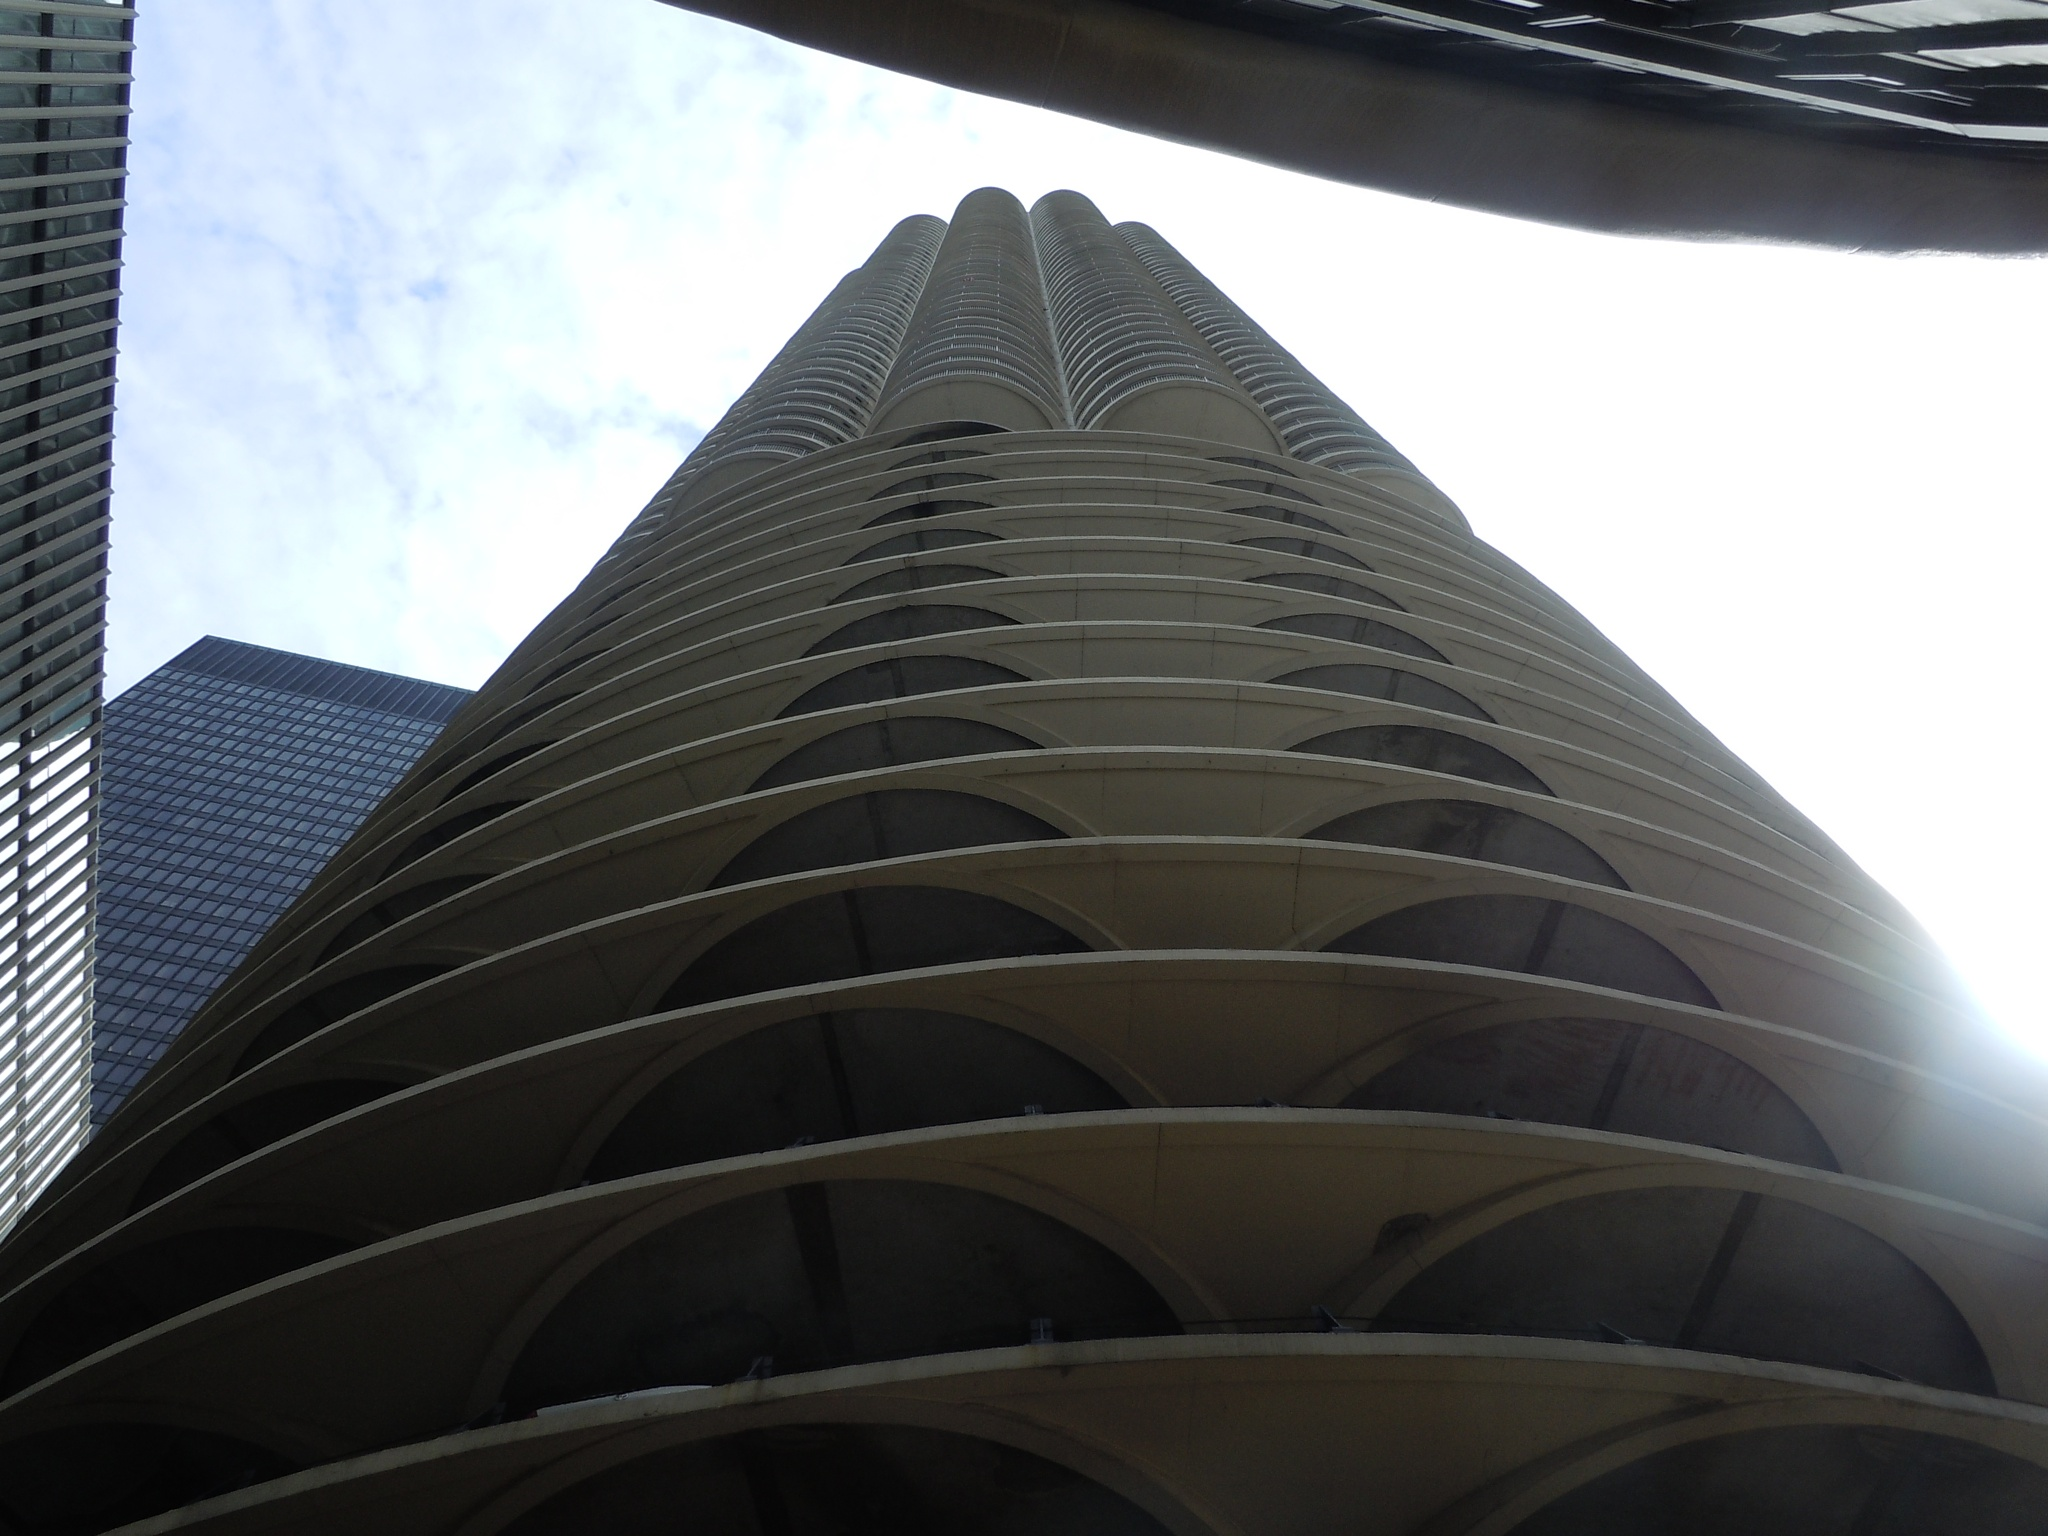 Marina Tower, Chicago by F J Bering